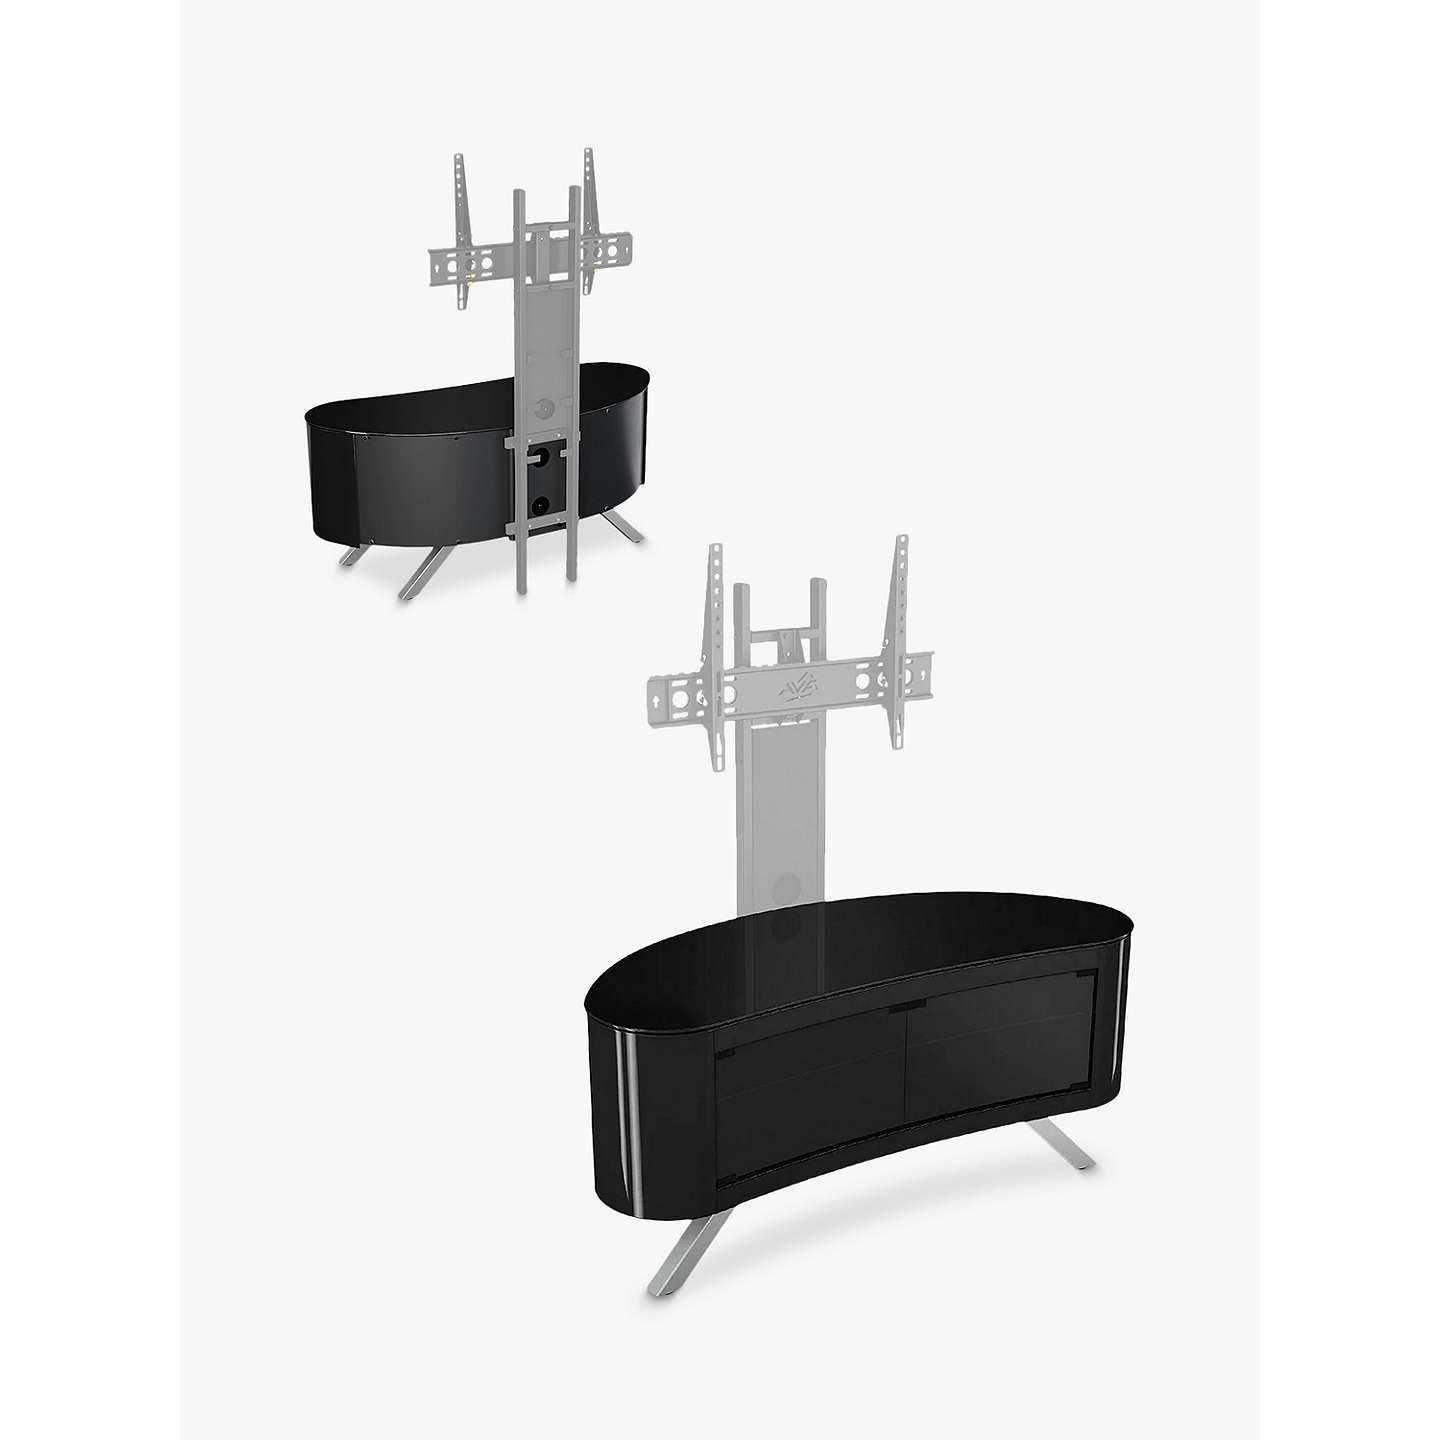 "BuyAVF Affinity Premium 1150 Bay Curved TV Stand For TVs Up To 55"", Black Online at johnlewis.com"